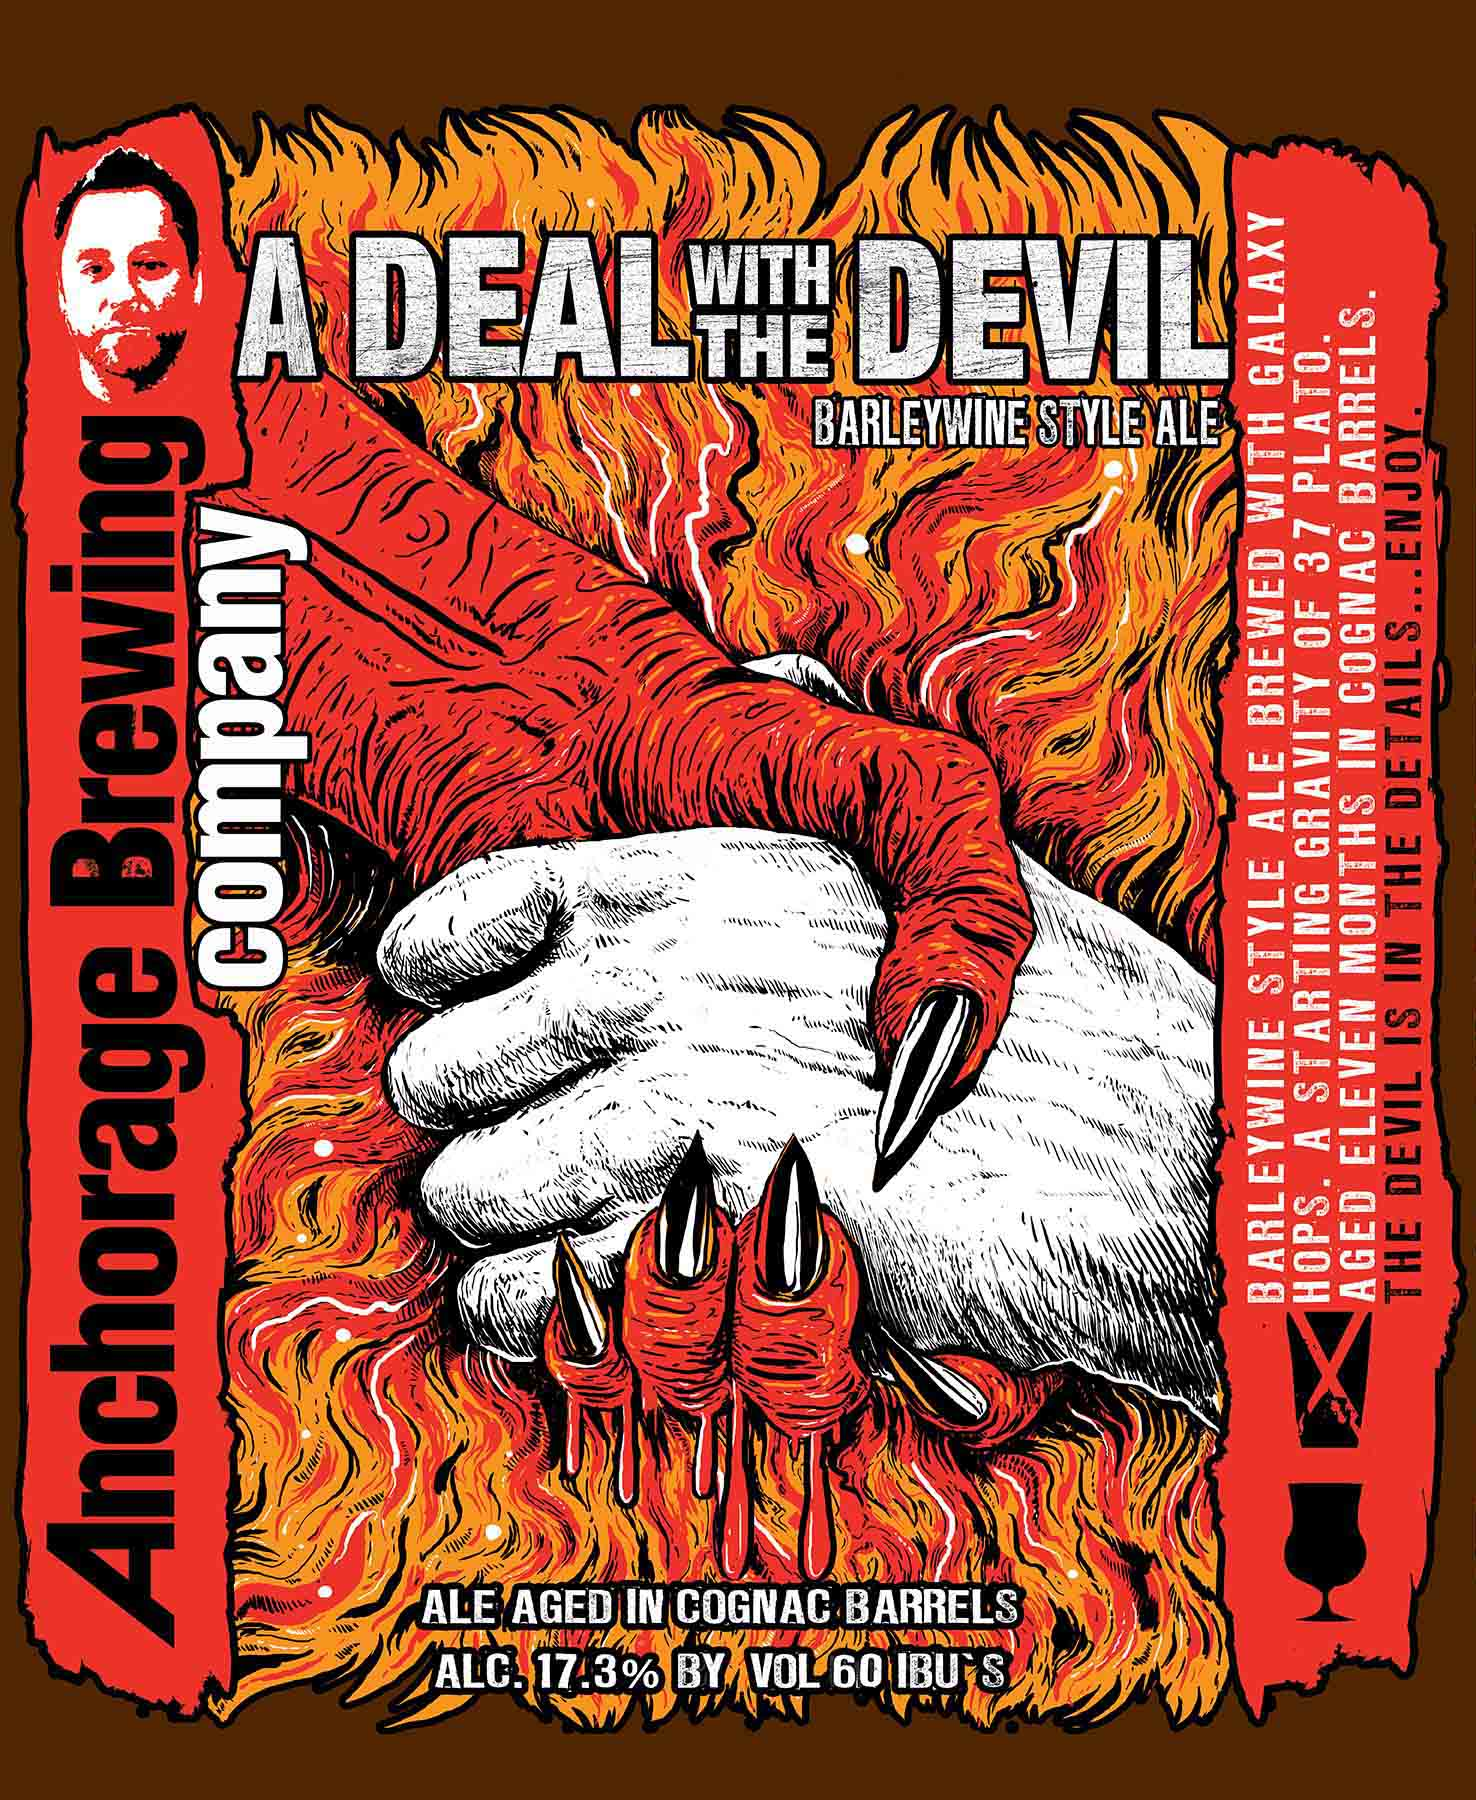 ANCHORAGE a deal with the devil - web